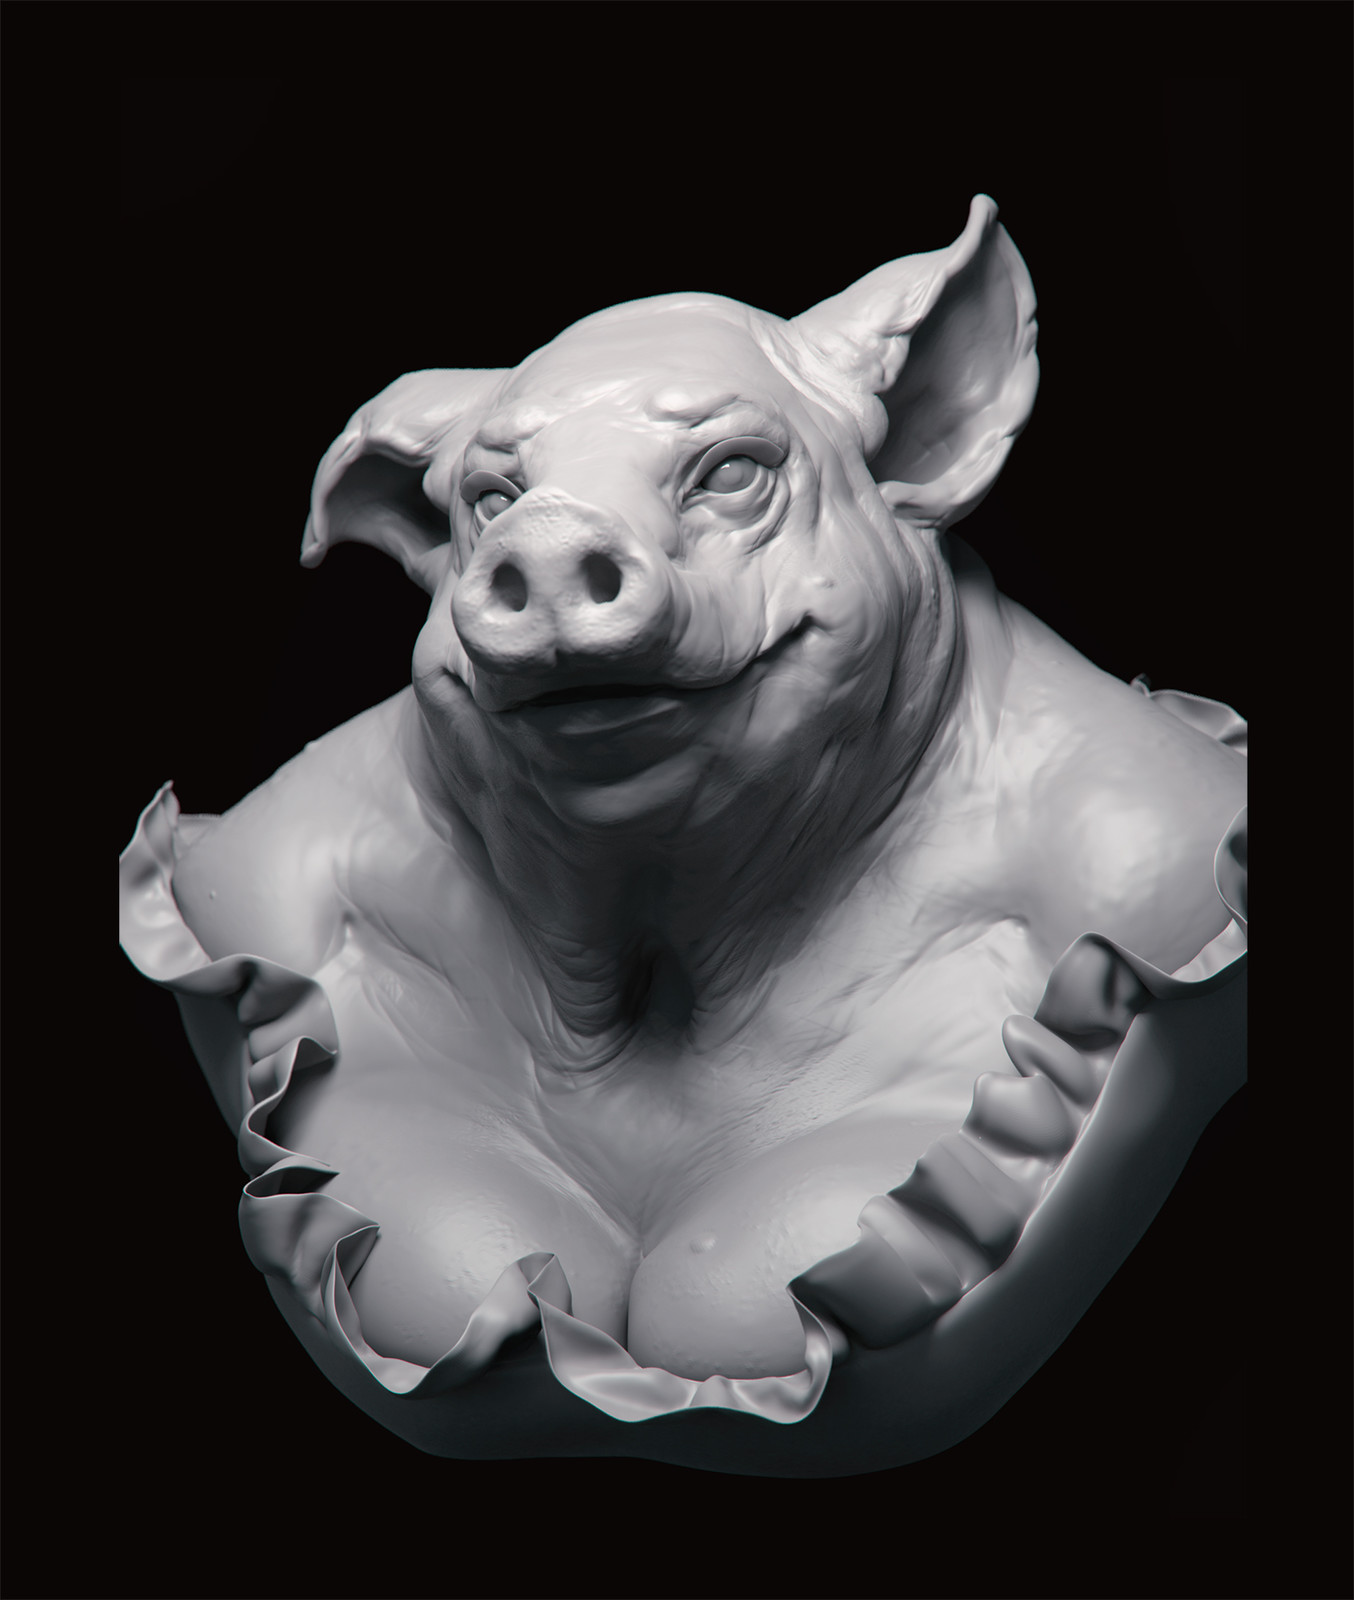 Miss Poppy - zbrush sketch rendered in Keyshot